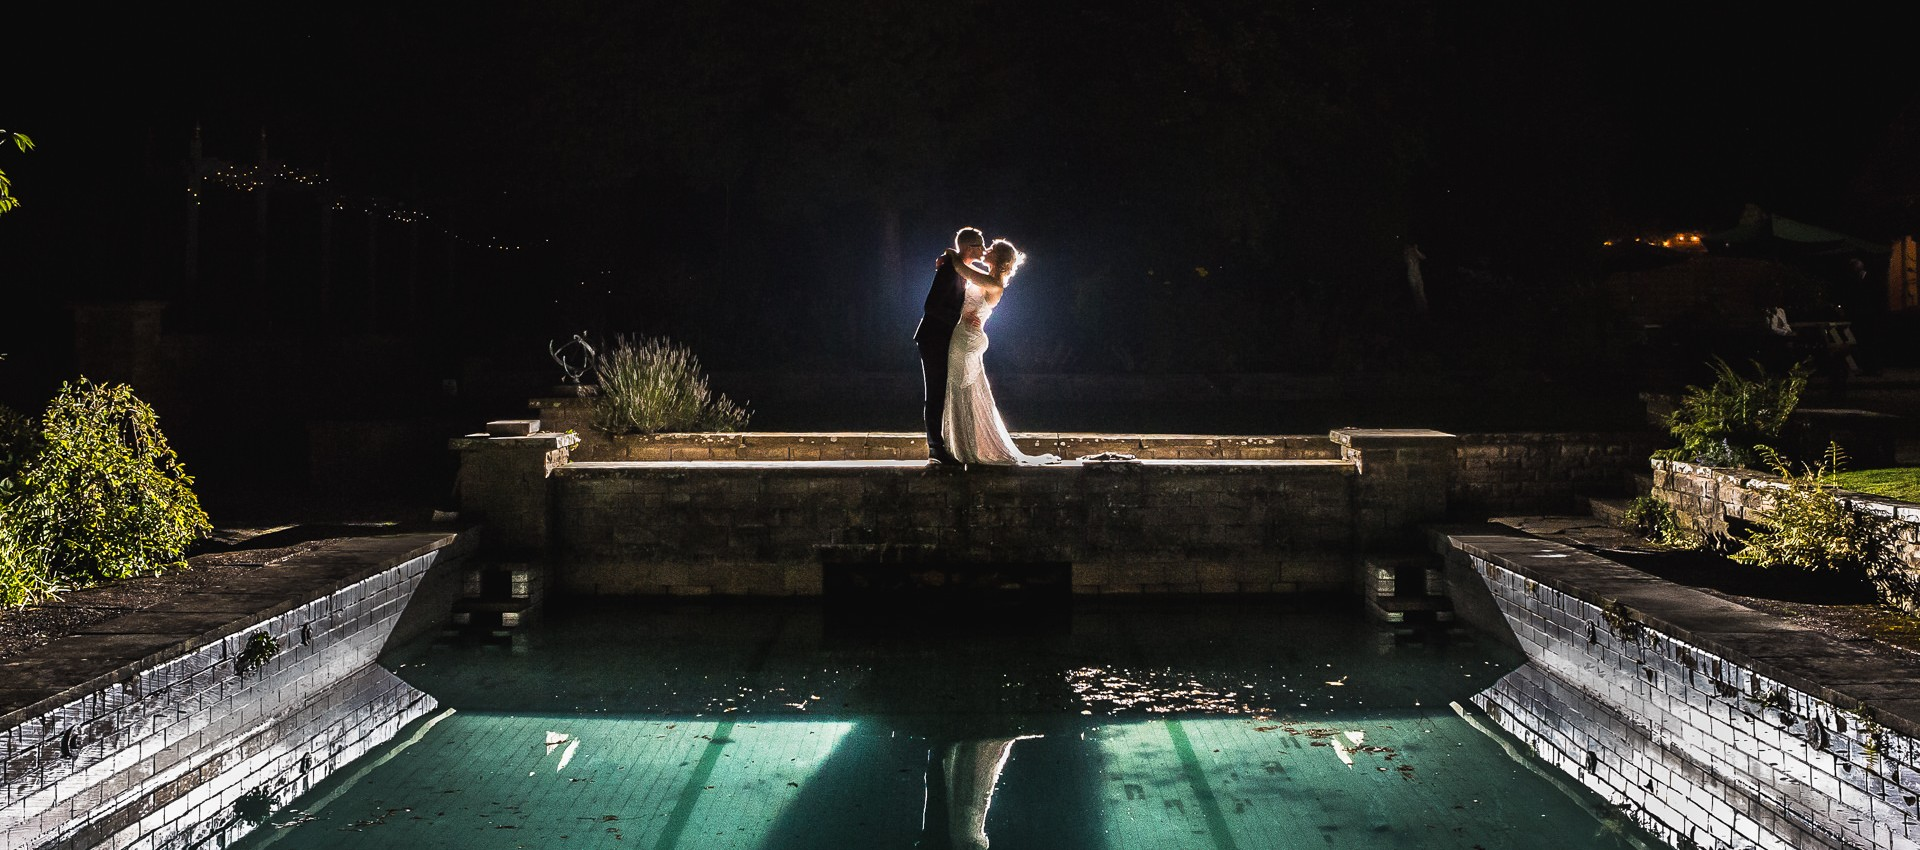 creative nighttime wedding photography staffordshire